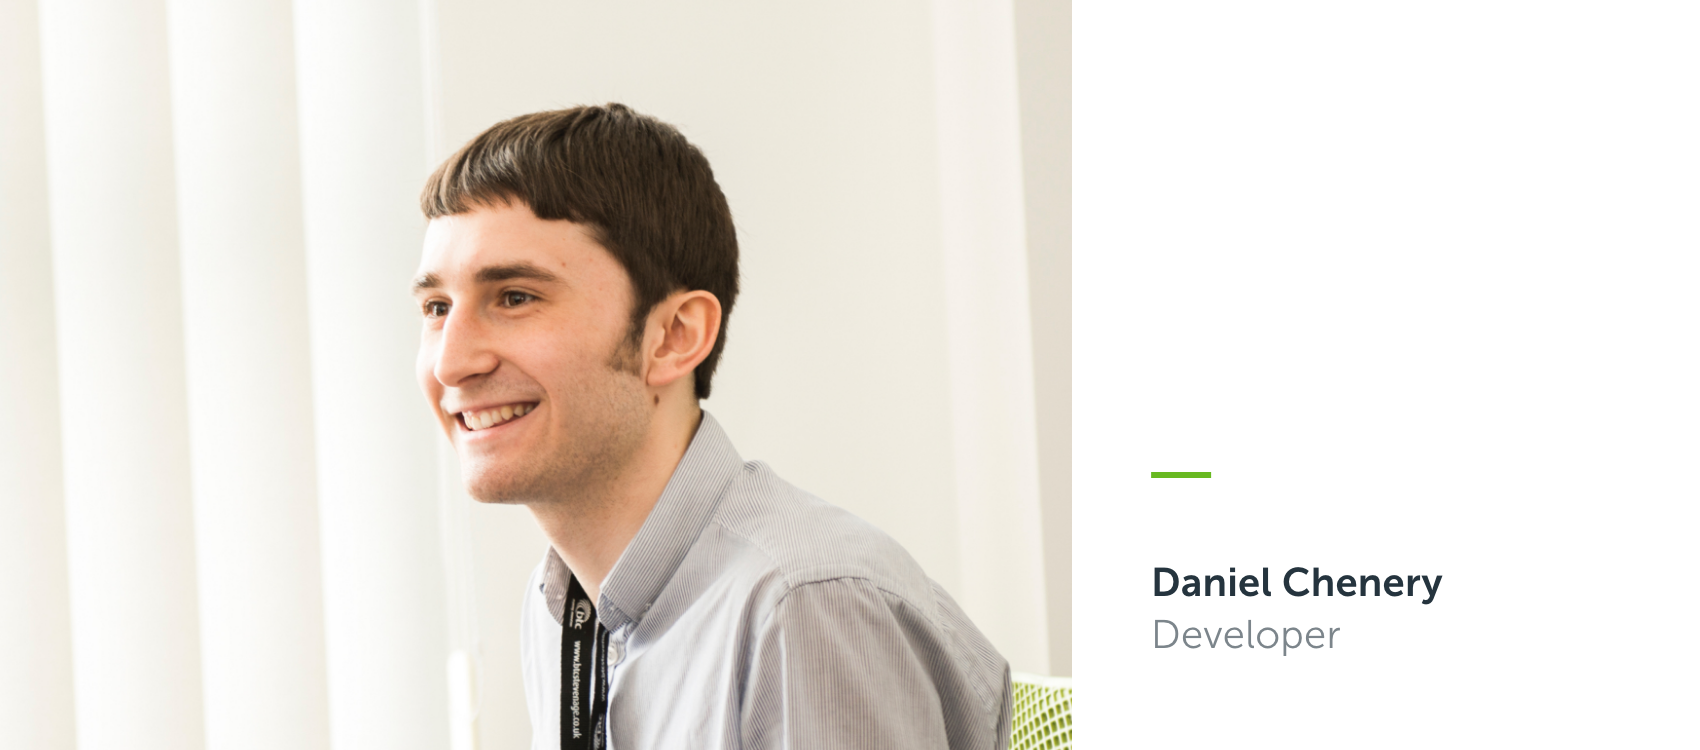 DocCentrics introduces Daniel Chenery to the development team